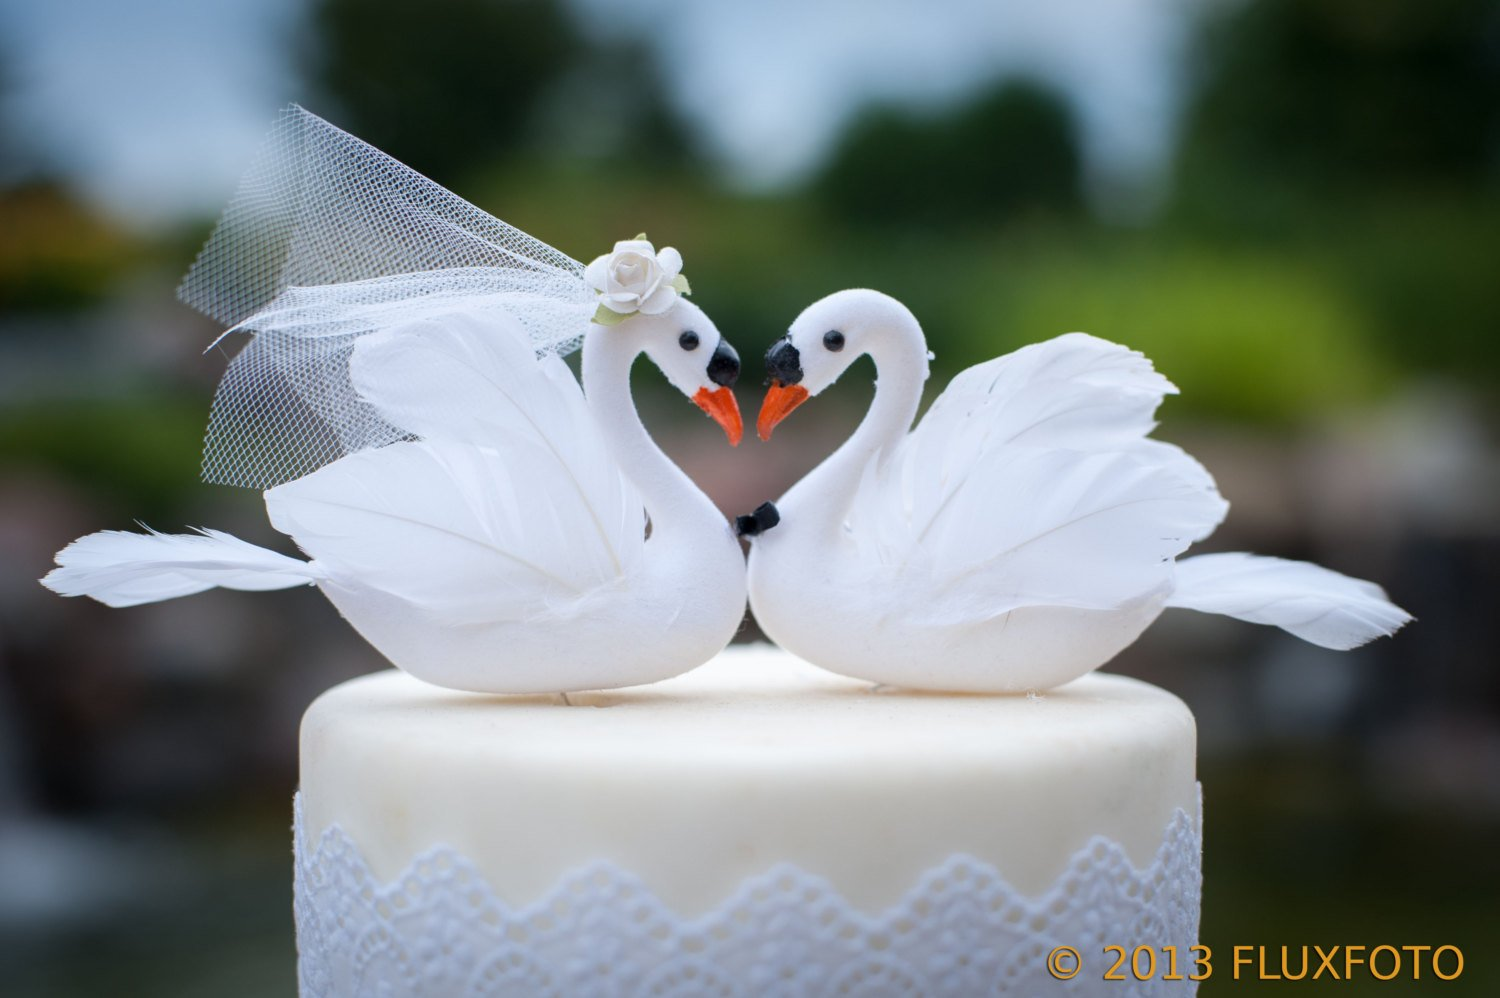 Amazoncom White Swan Cake Topper Bride and Groom Love Bird